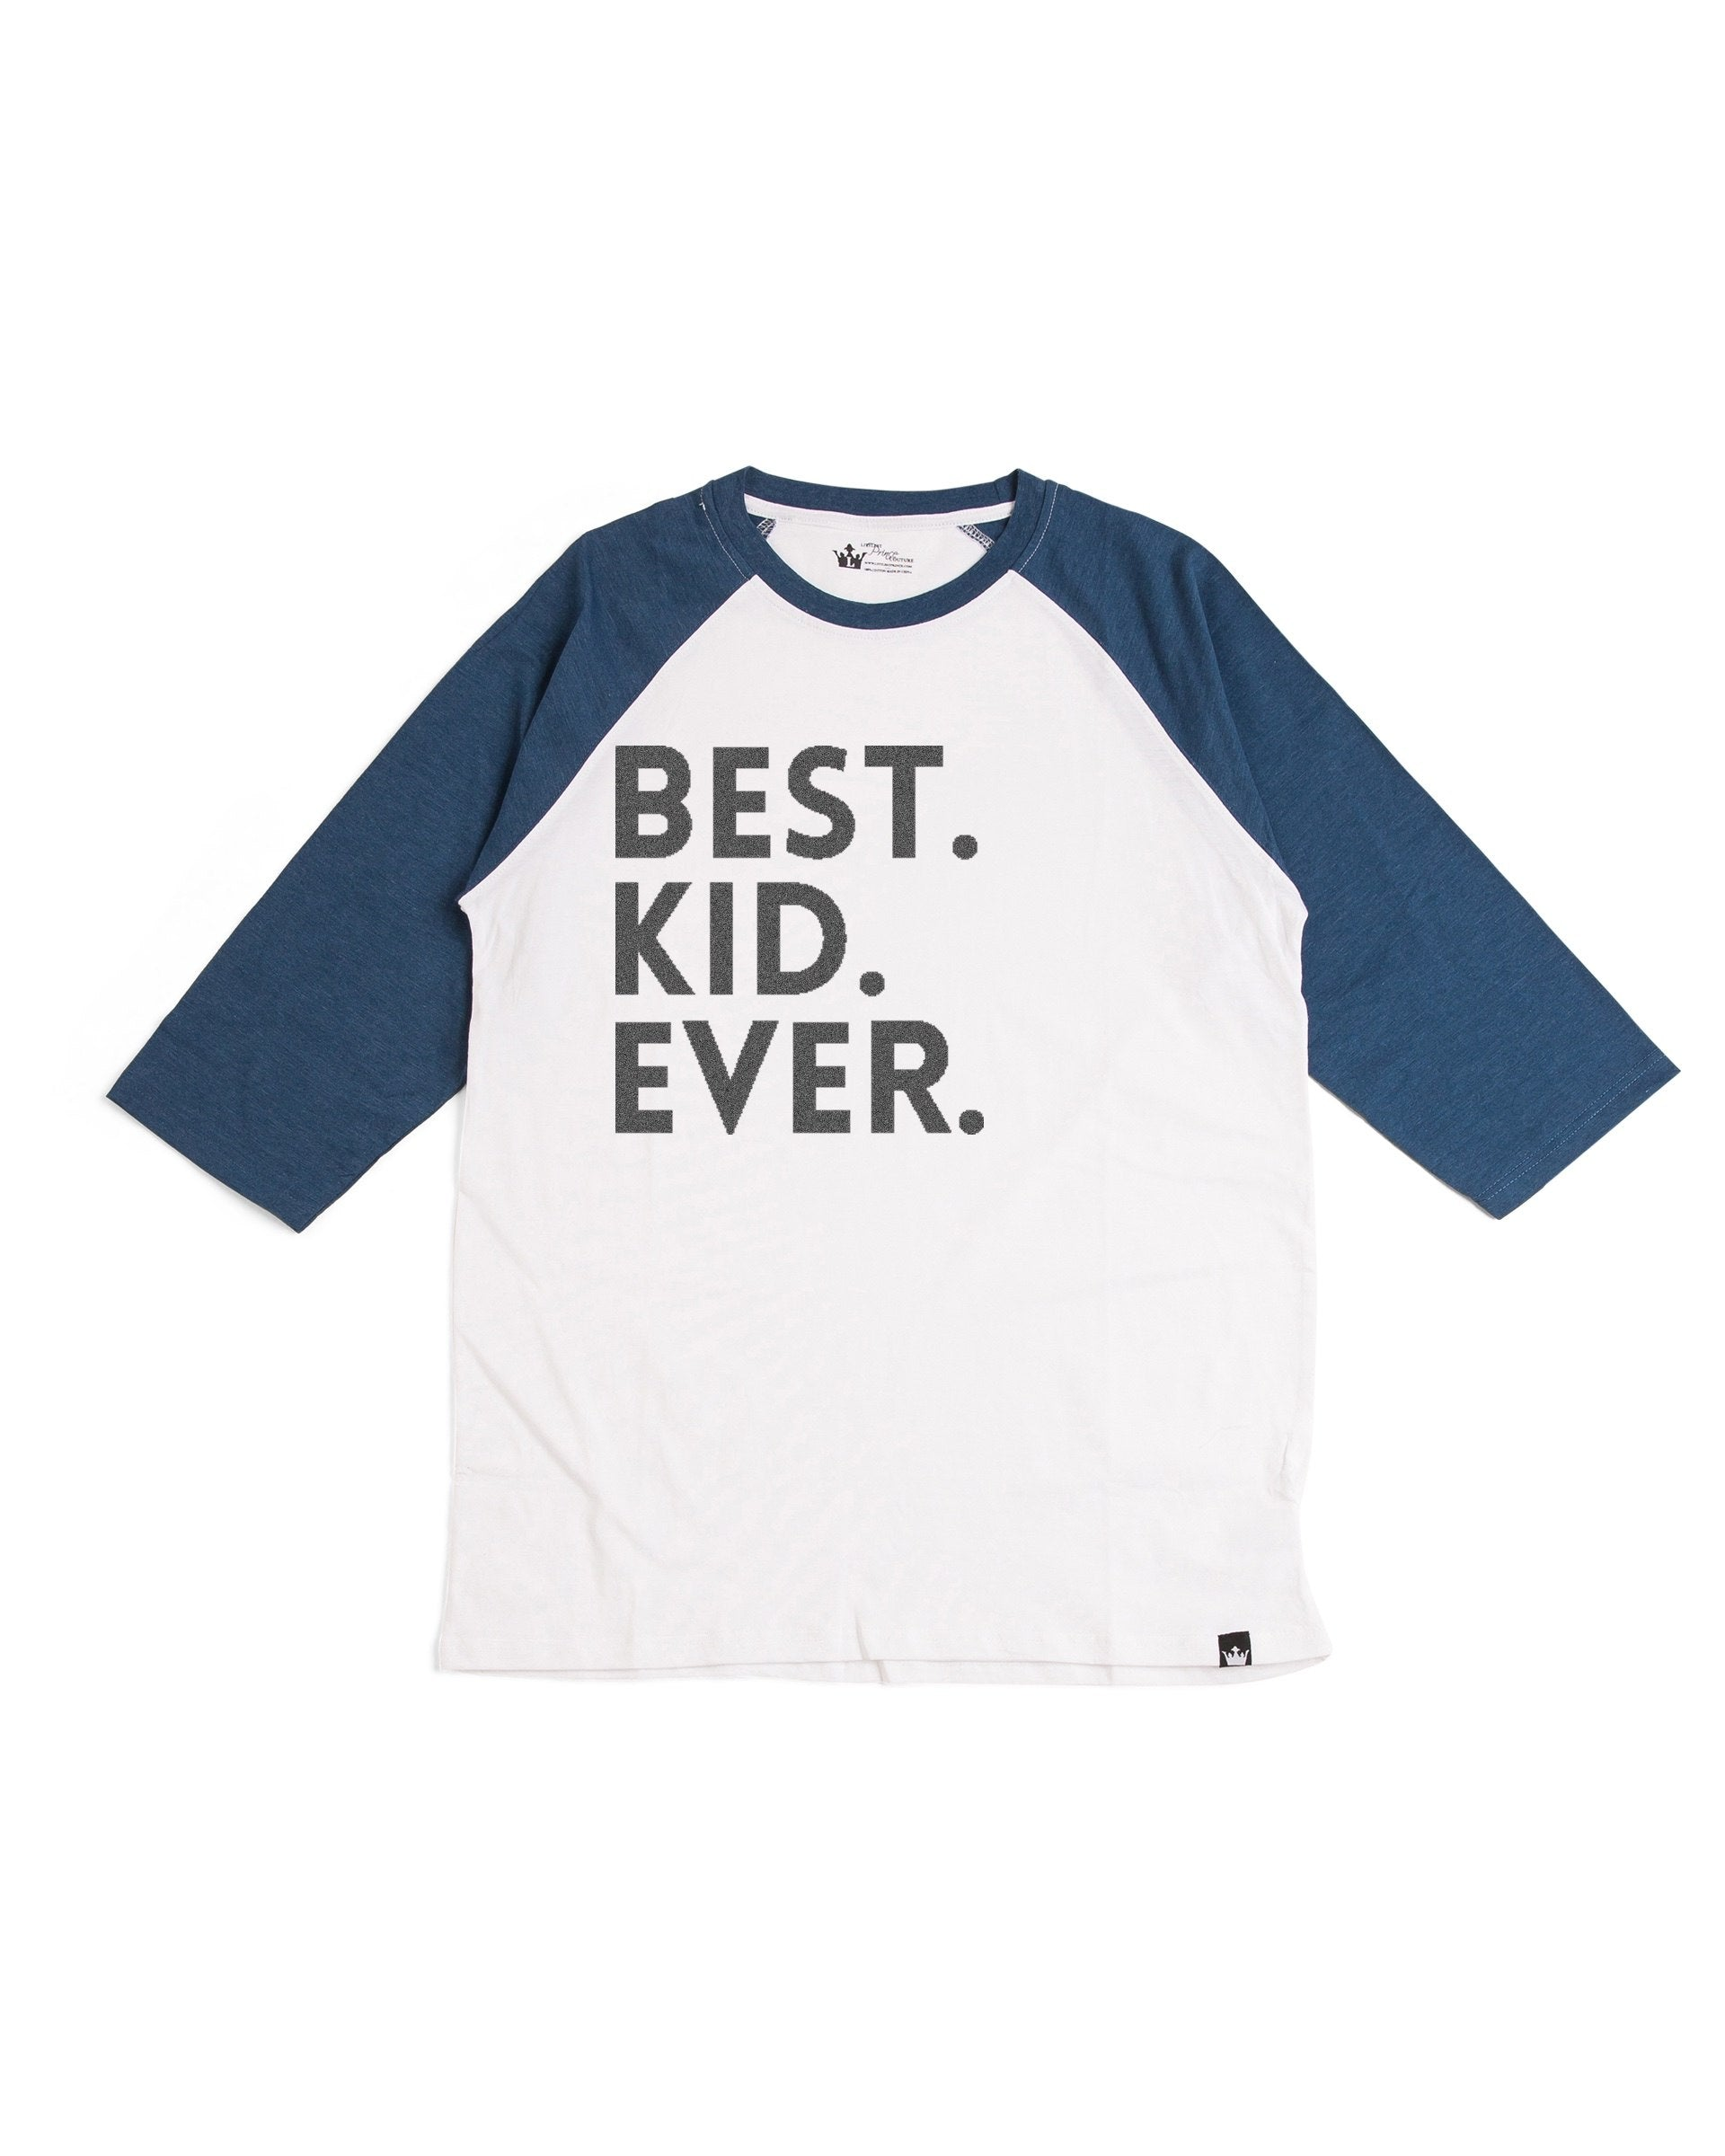 fds-bke-ngsr-best-kid-ever-navy-white-half-sleeve-raglan-shirt.jpg